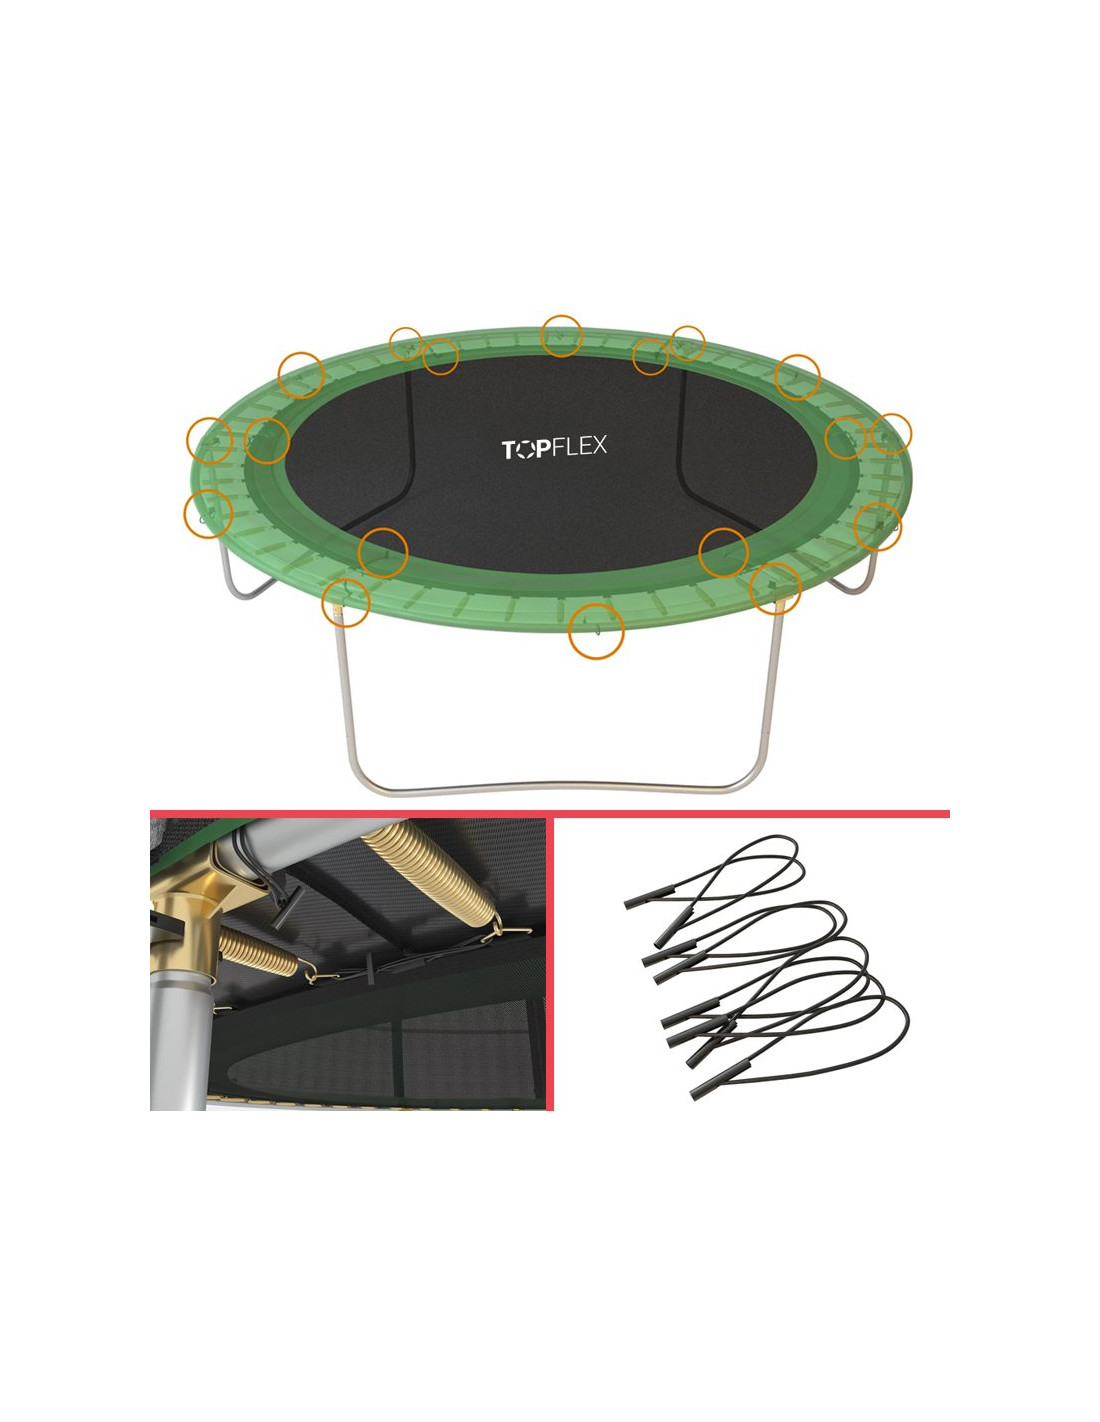 vente de trampoline 305cm avec filet petit trampoline. Black Bedroom Furniture Sets. Home Design Ideas